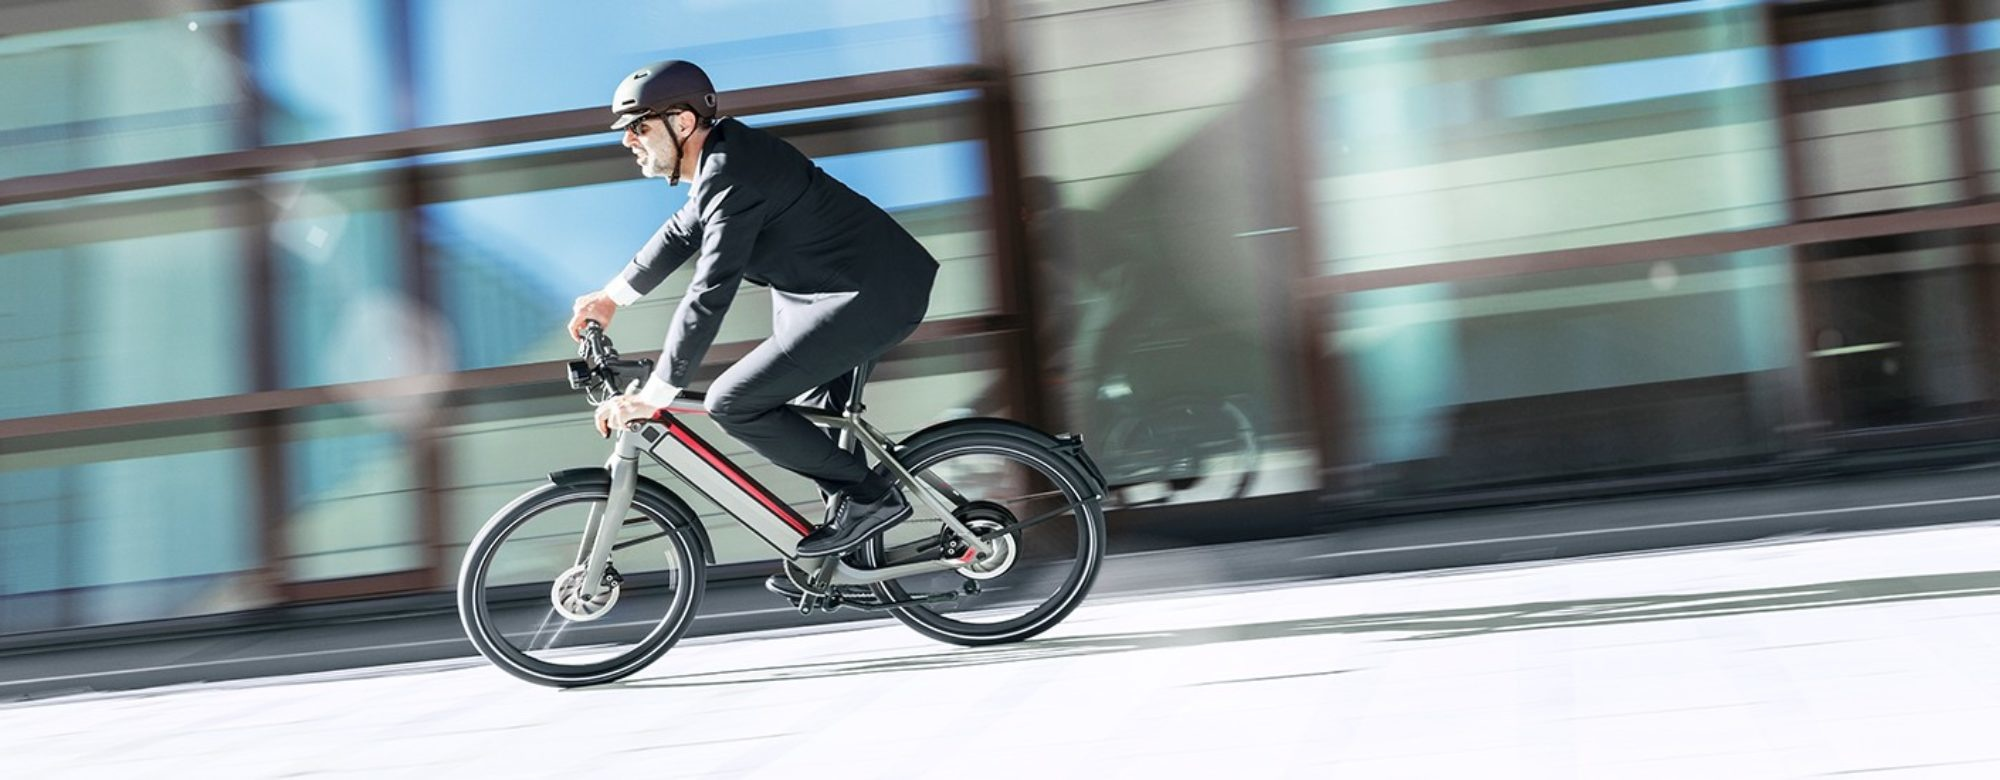 AN E-BIKE IS THE PERFECT WAY TO COPE WITH THE CORONA VIRUS